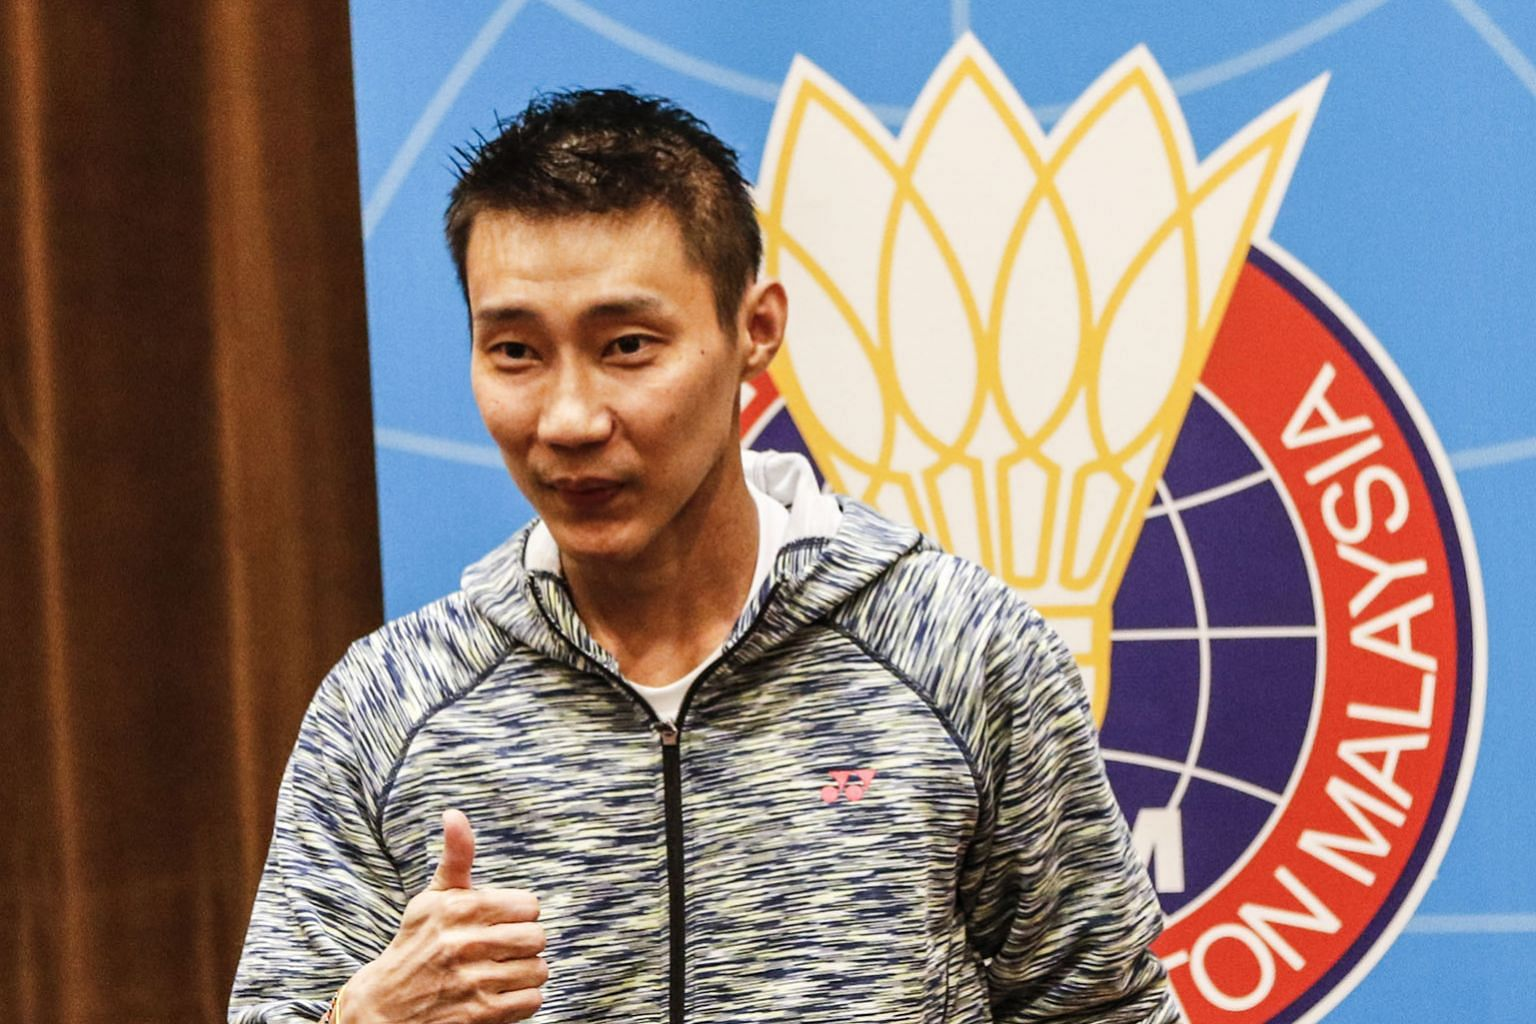 Lee Chong Wei could find himself out of the world's top 100 by end-April. He must be in the top 16 to be sure of an Olympic slot.